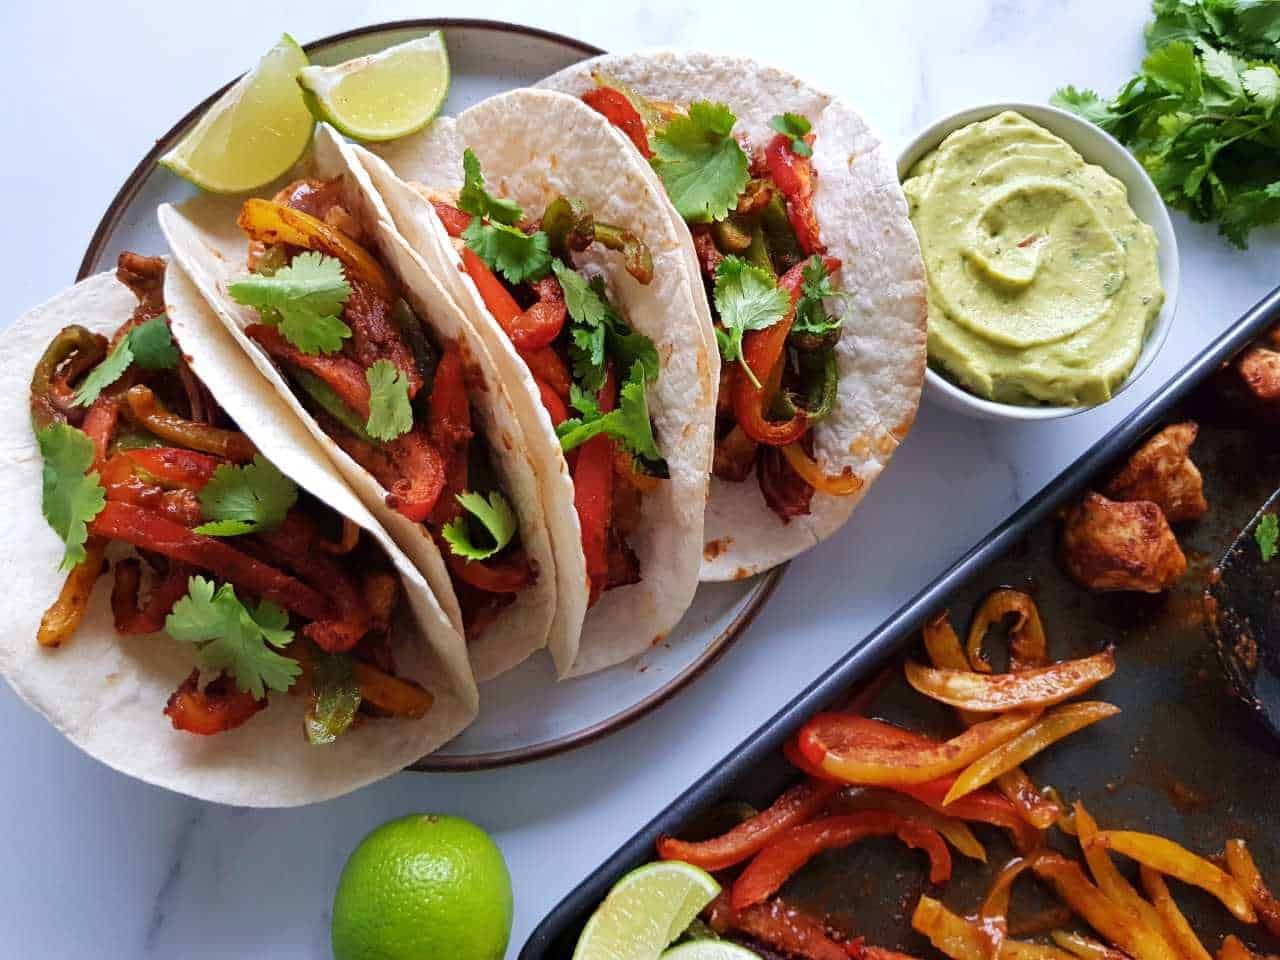 Plated fajitas with guacamole and lime on the side.